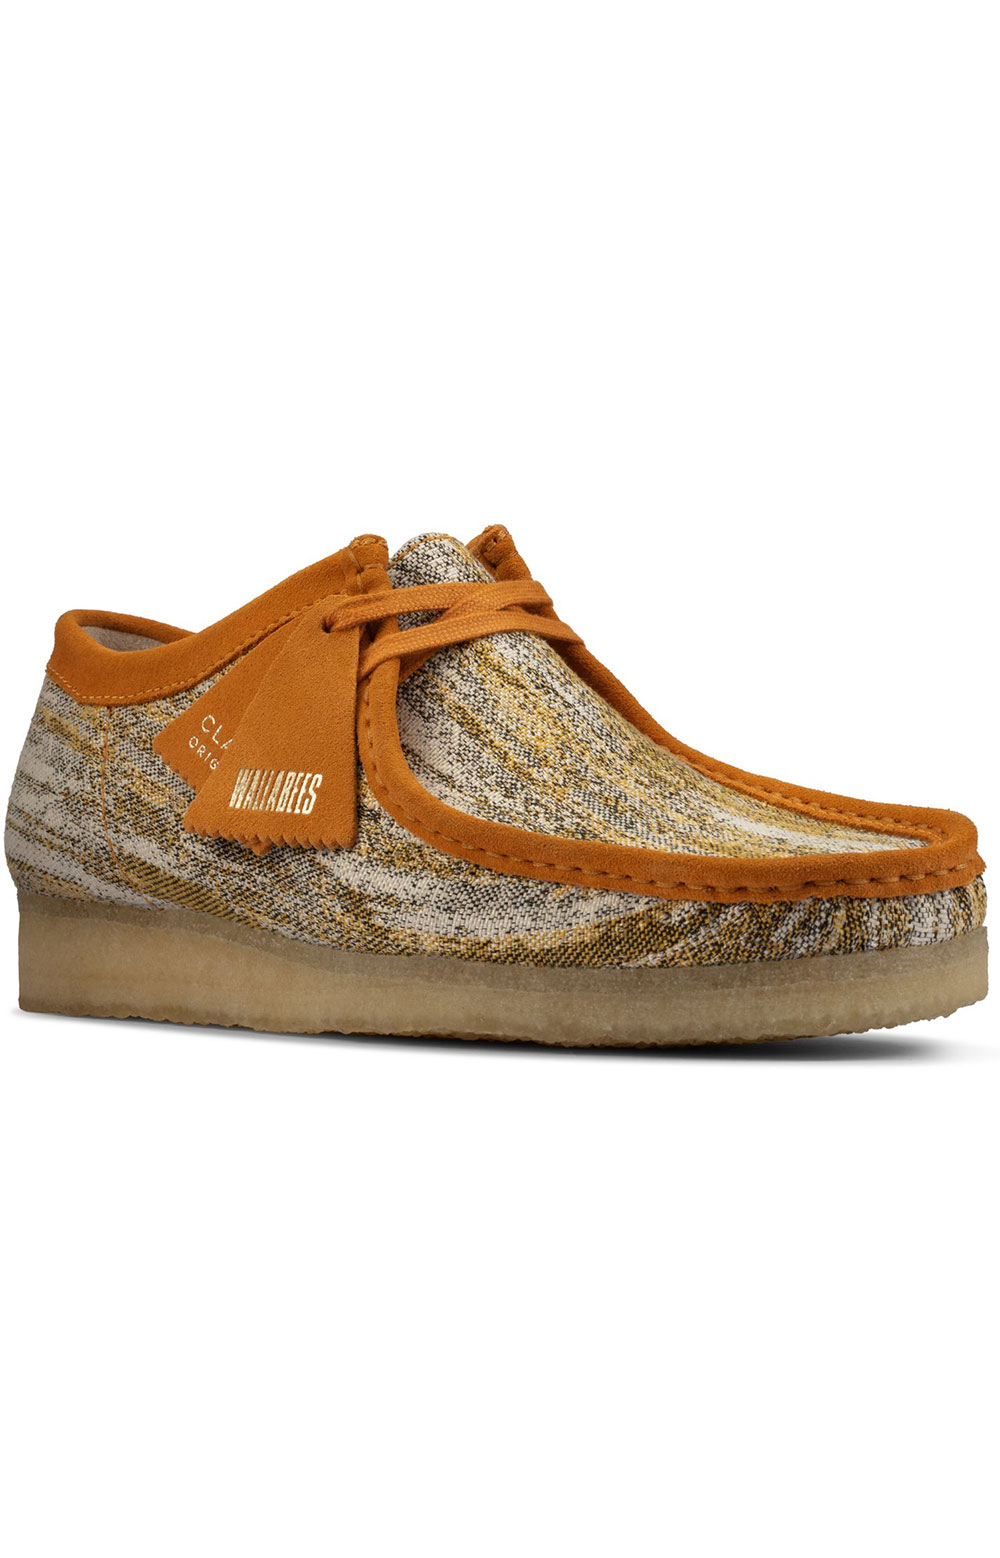 (26159548) Wallabee Shoes - Sand Fabric  3